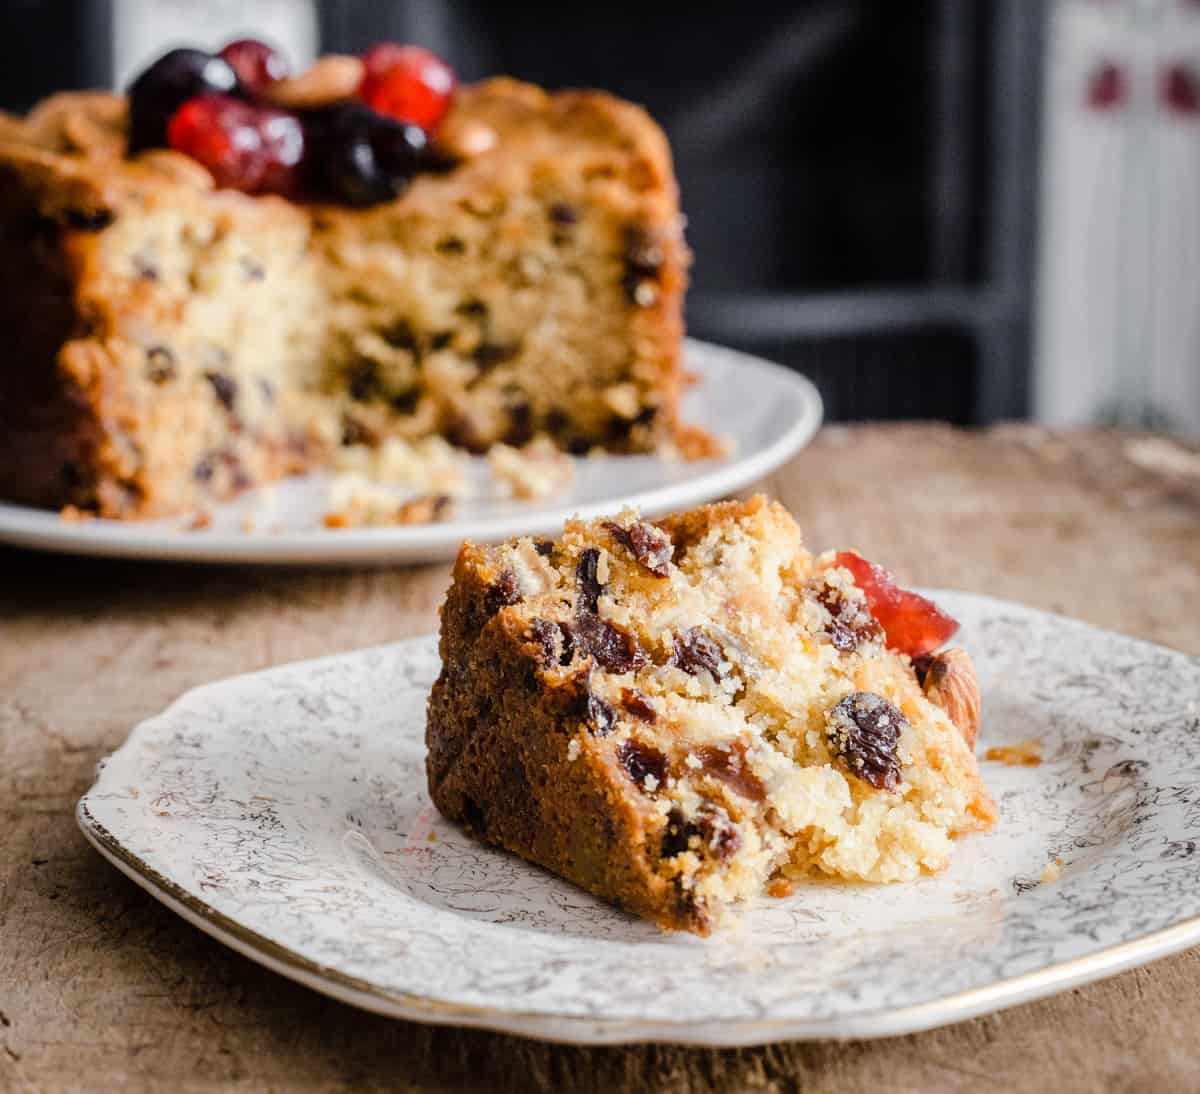 A slice of Gluten-Free Fruit Cake on a plate in front of the rest of the cake